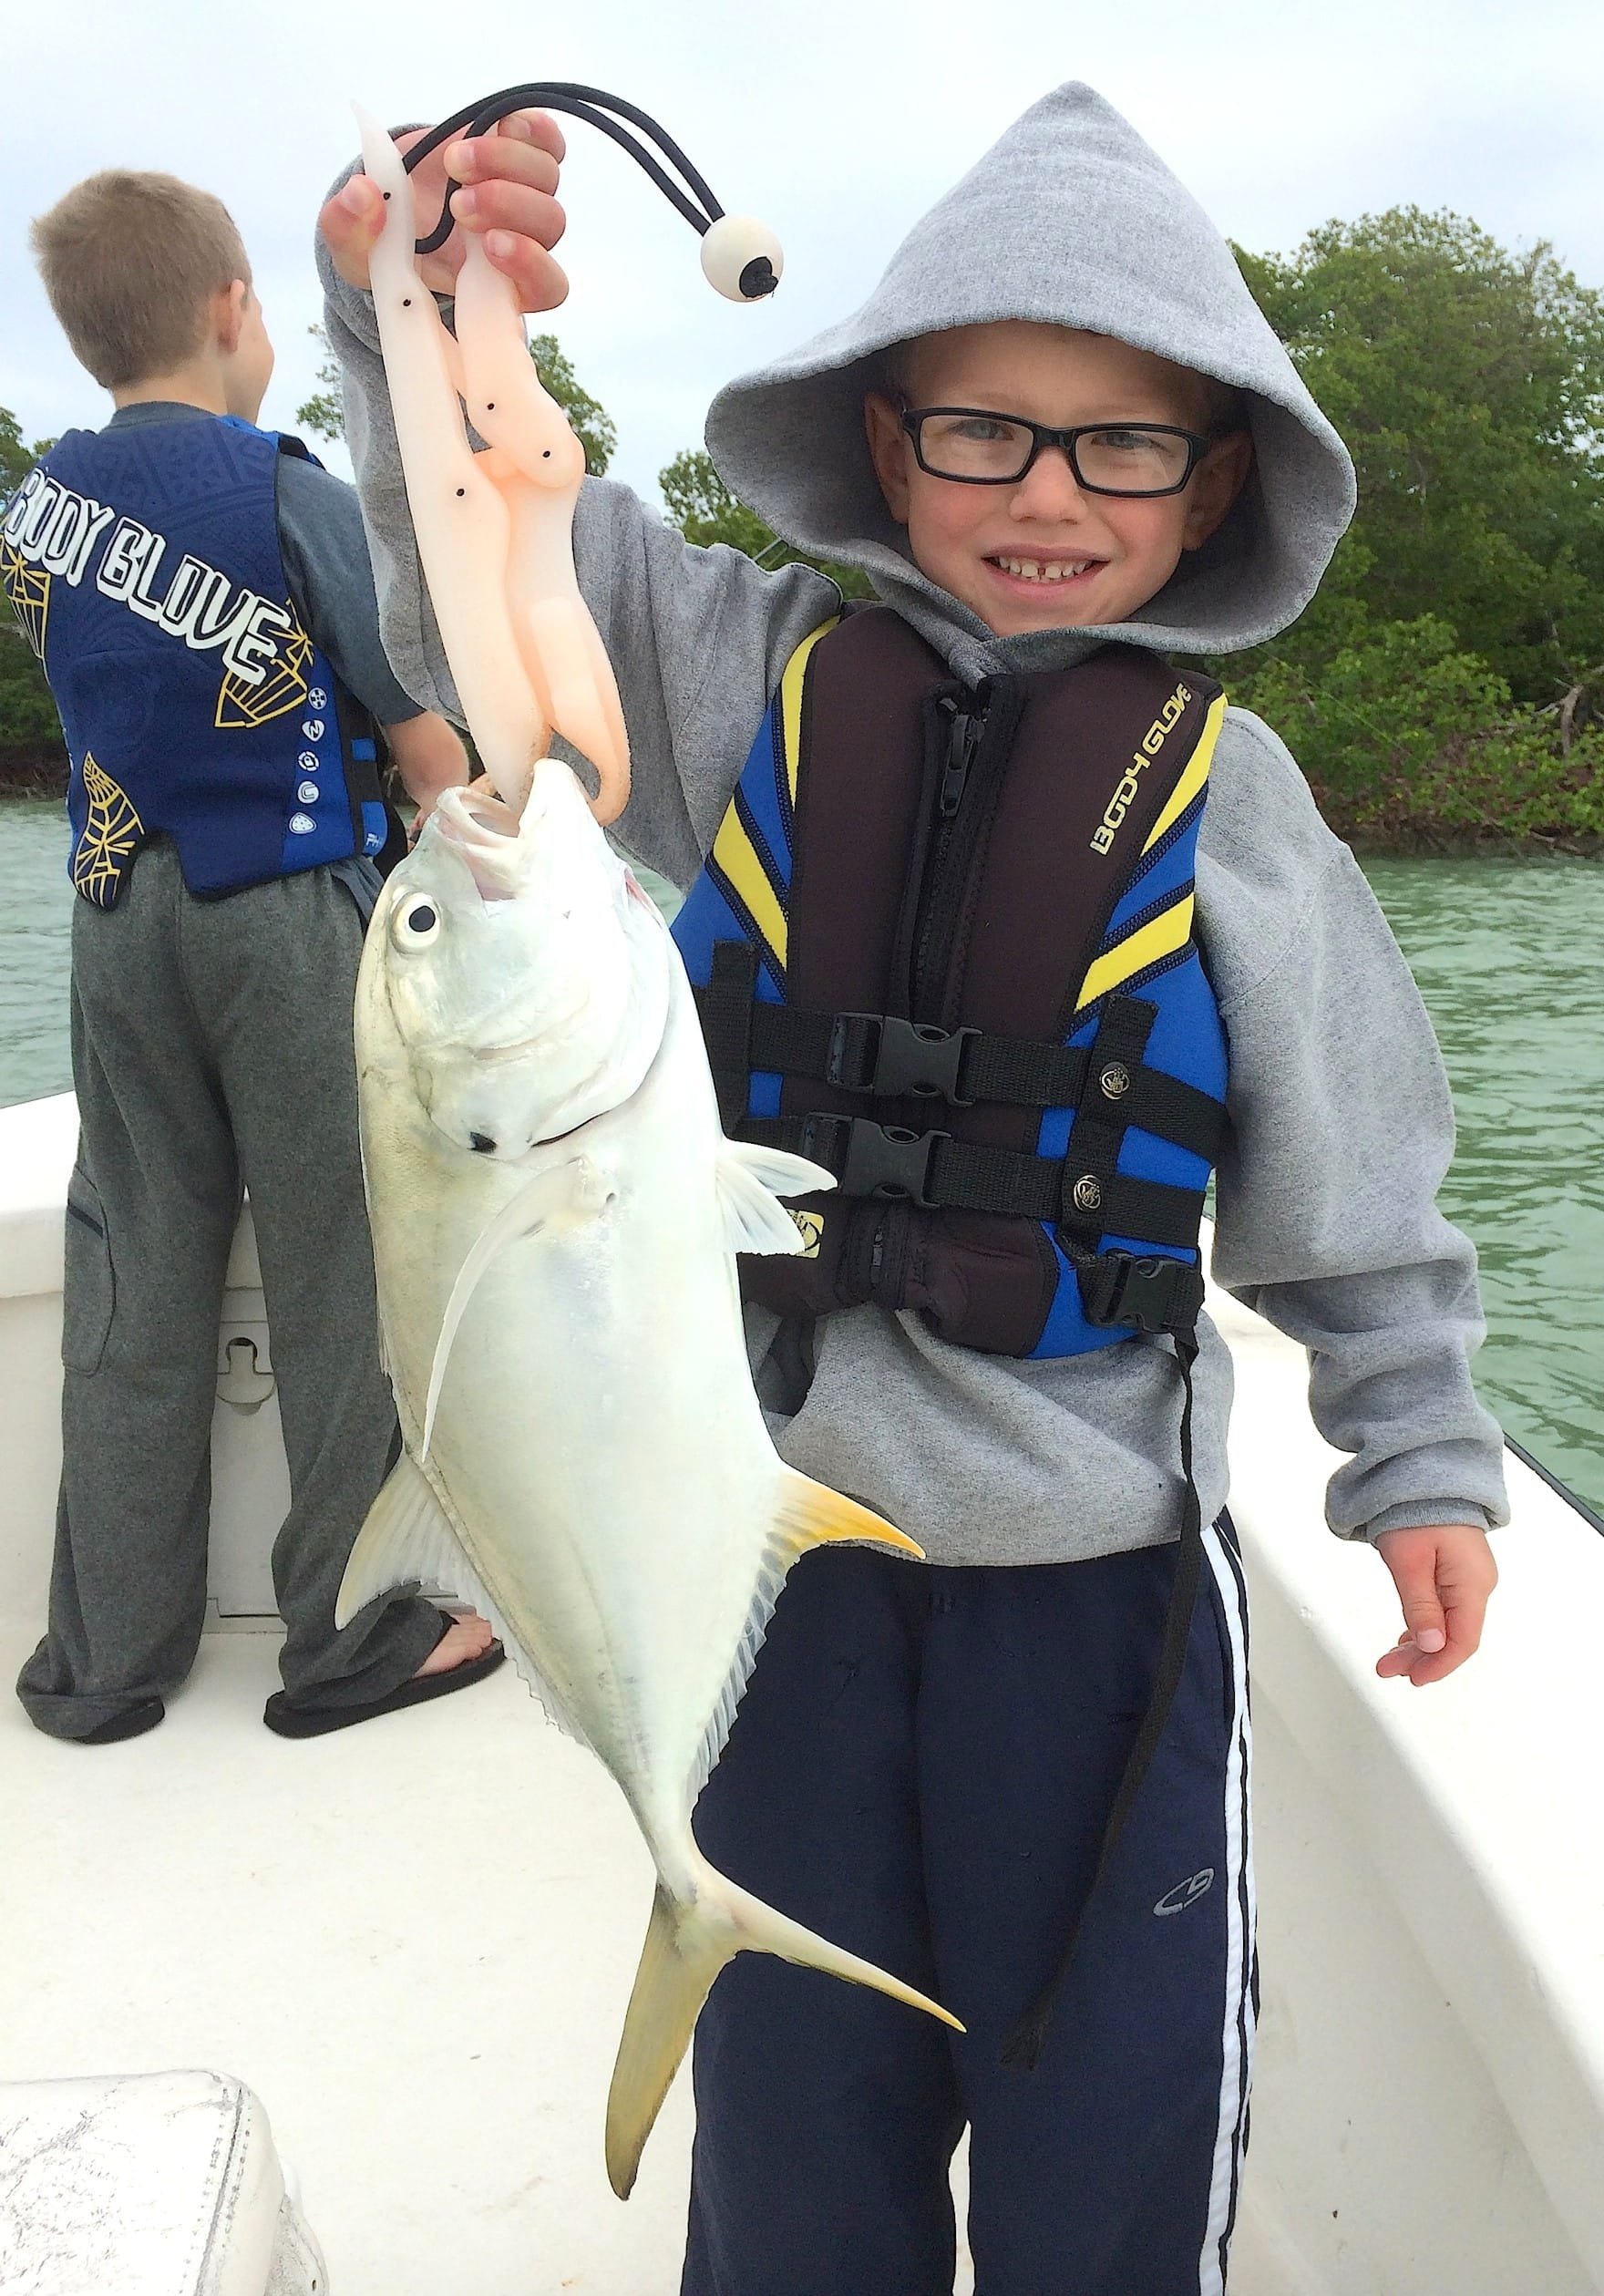 Jack Crevalle, 11-17-14, Sanibel Fishing & Captiva Fishing & Fort Myers Fishing Charters & Guide Service.